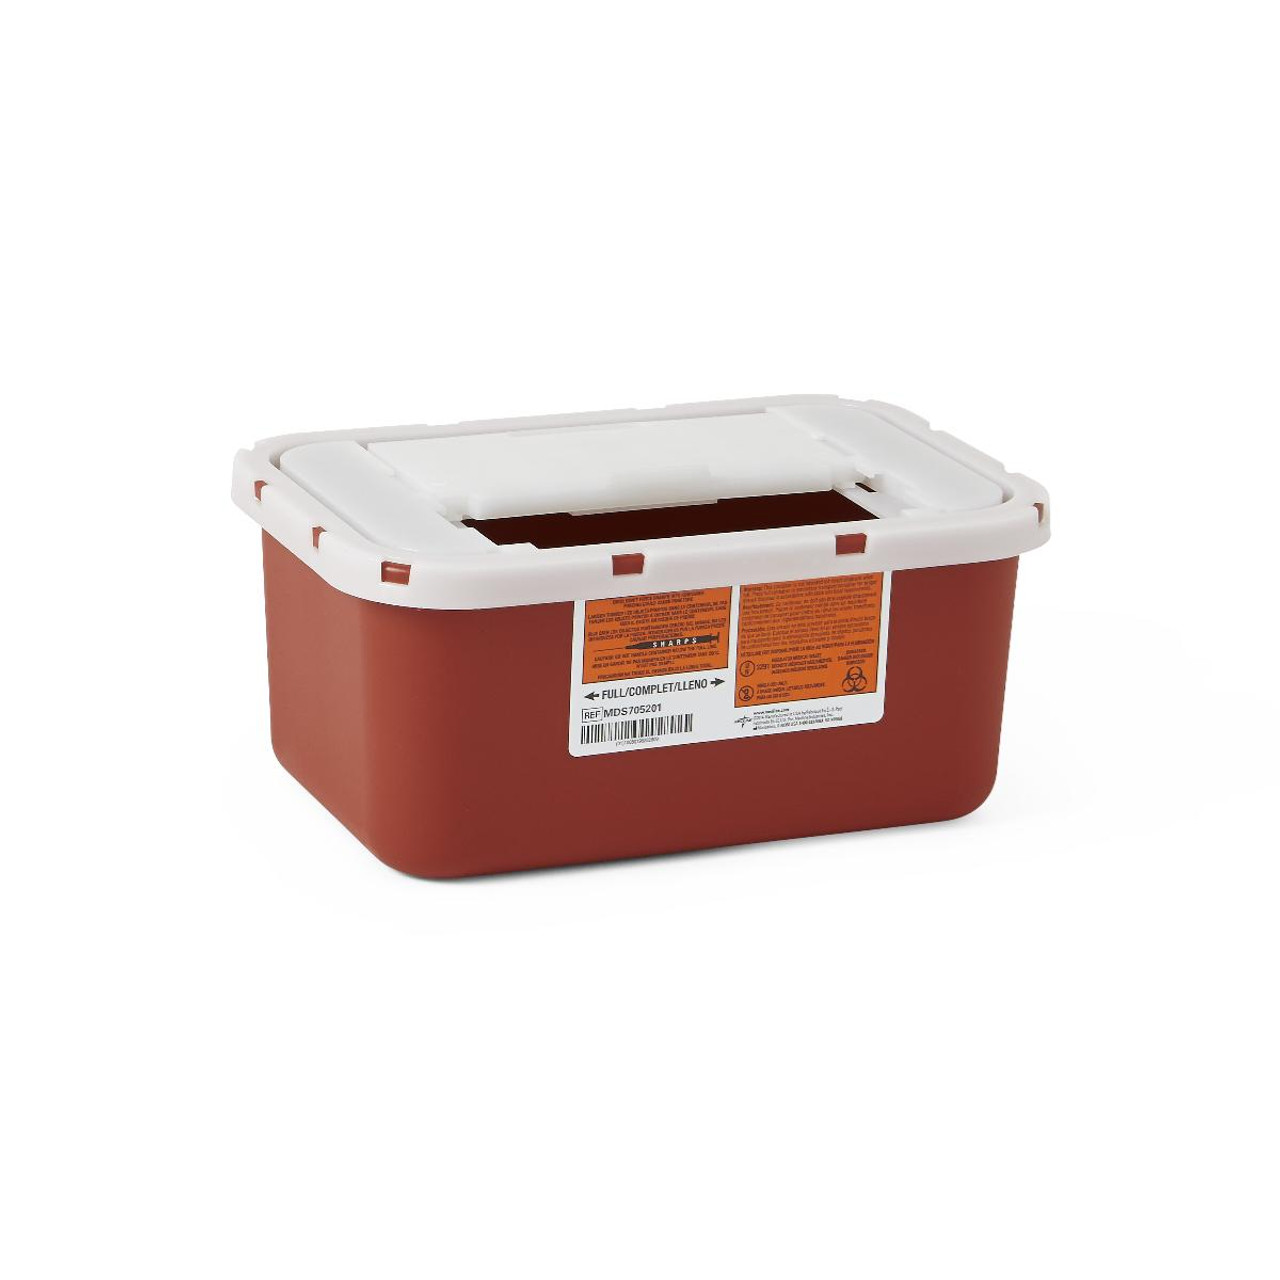 1 Gallon Sharps Container with Sliding Lid